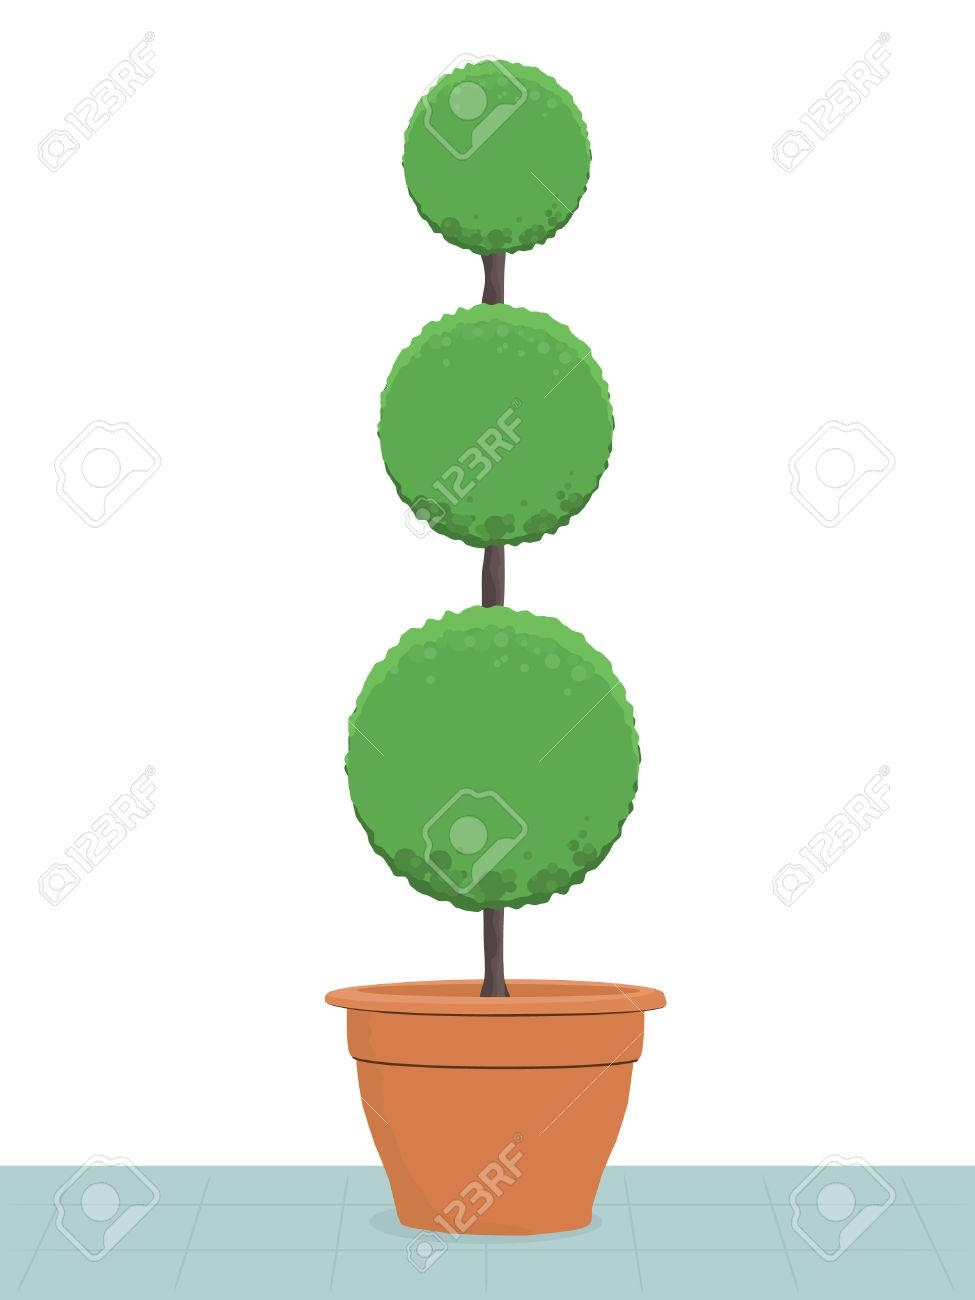 417 Topiary Stock Vector Illustration And Royalty Free Topiary Clipart in Topiary Wall Art